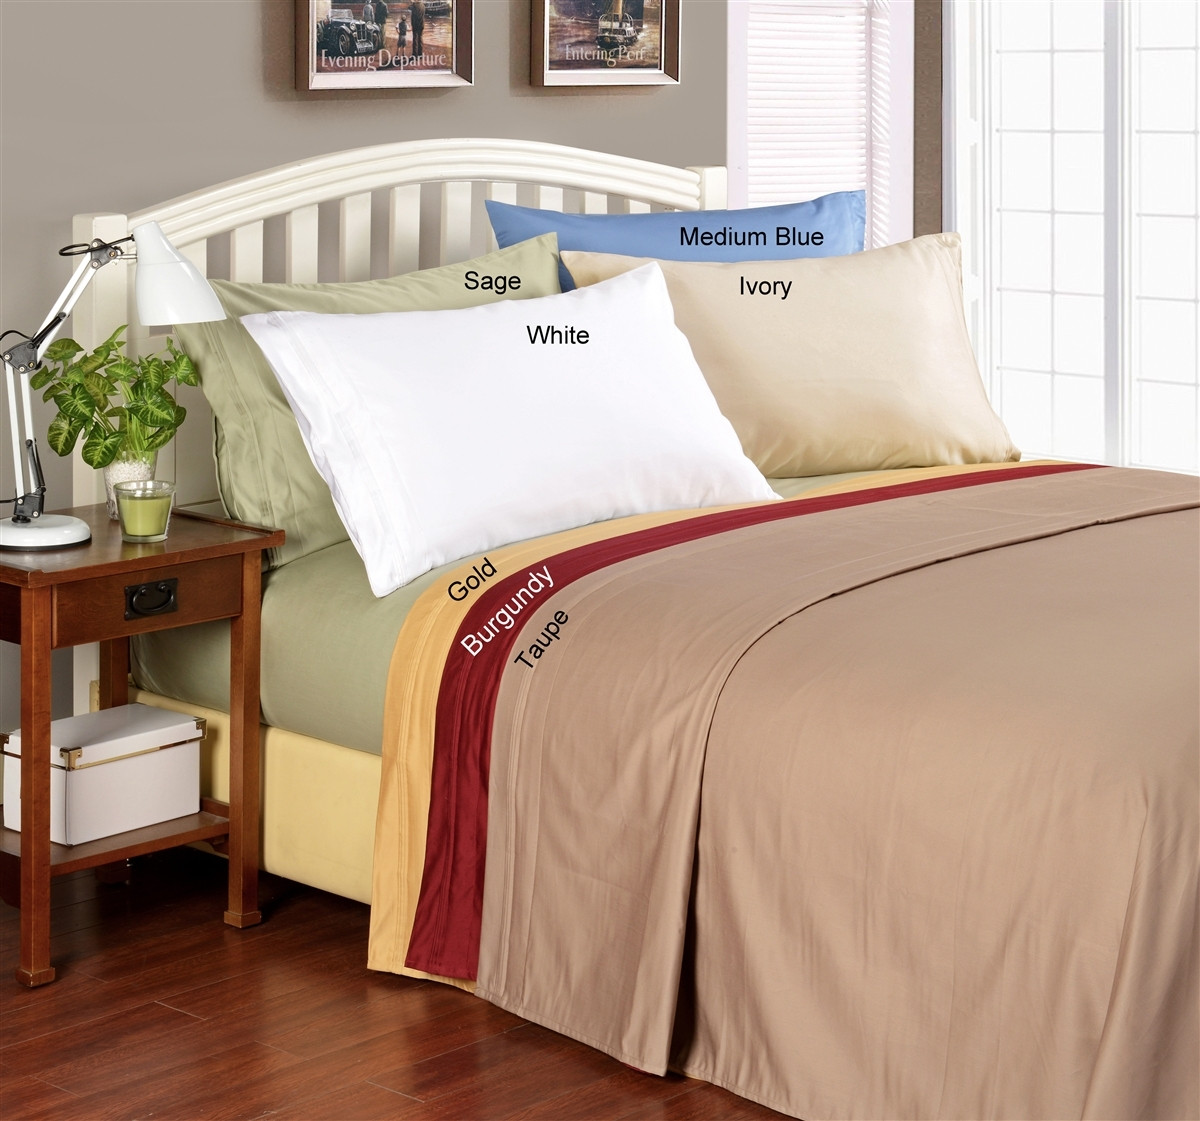 WHITE SOLID STRIPED ALL SIZES ALL BEDDING ITEMS 1000 TC EGYPTIAN COTTON